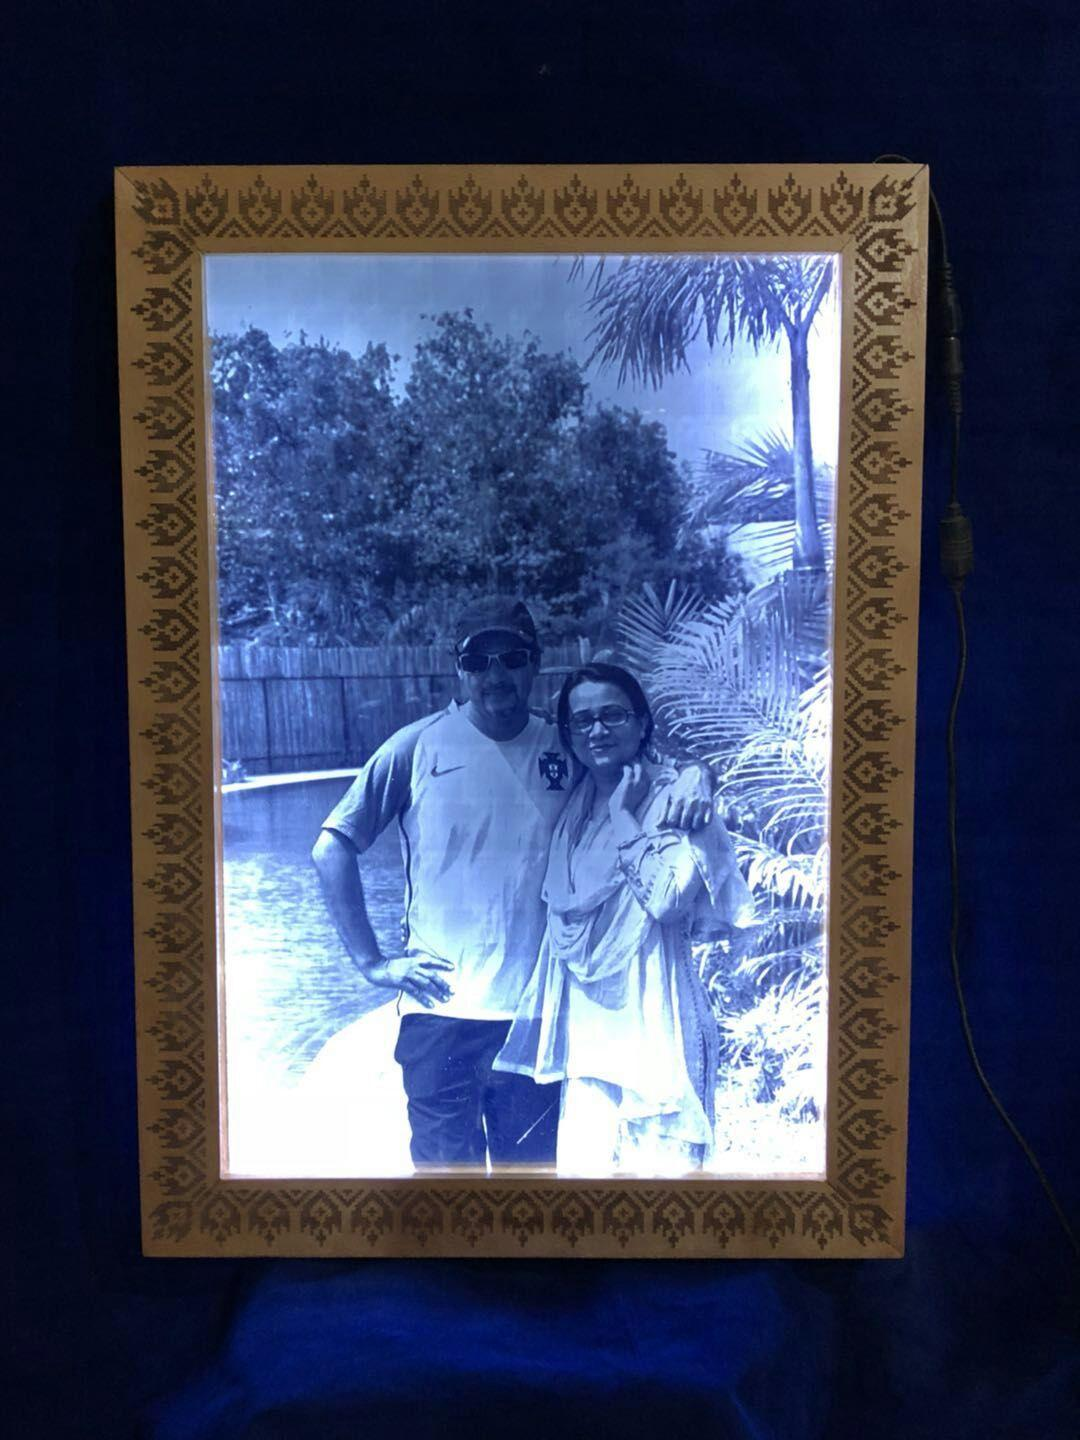 2D Laser Engraved Picture on Glass with wooden framing | Amecon